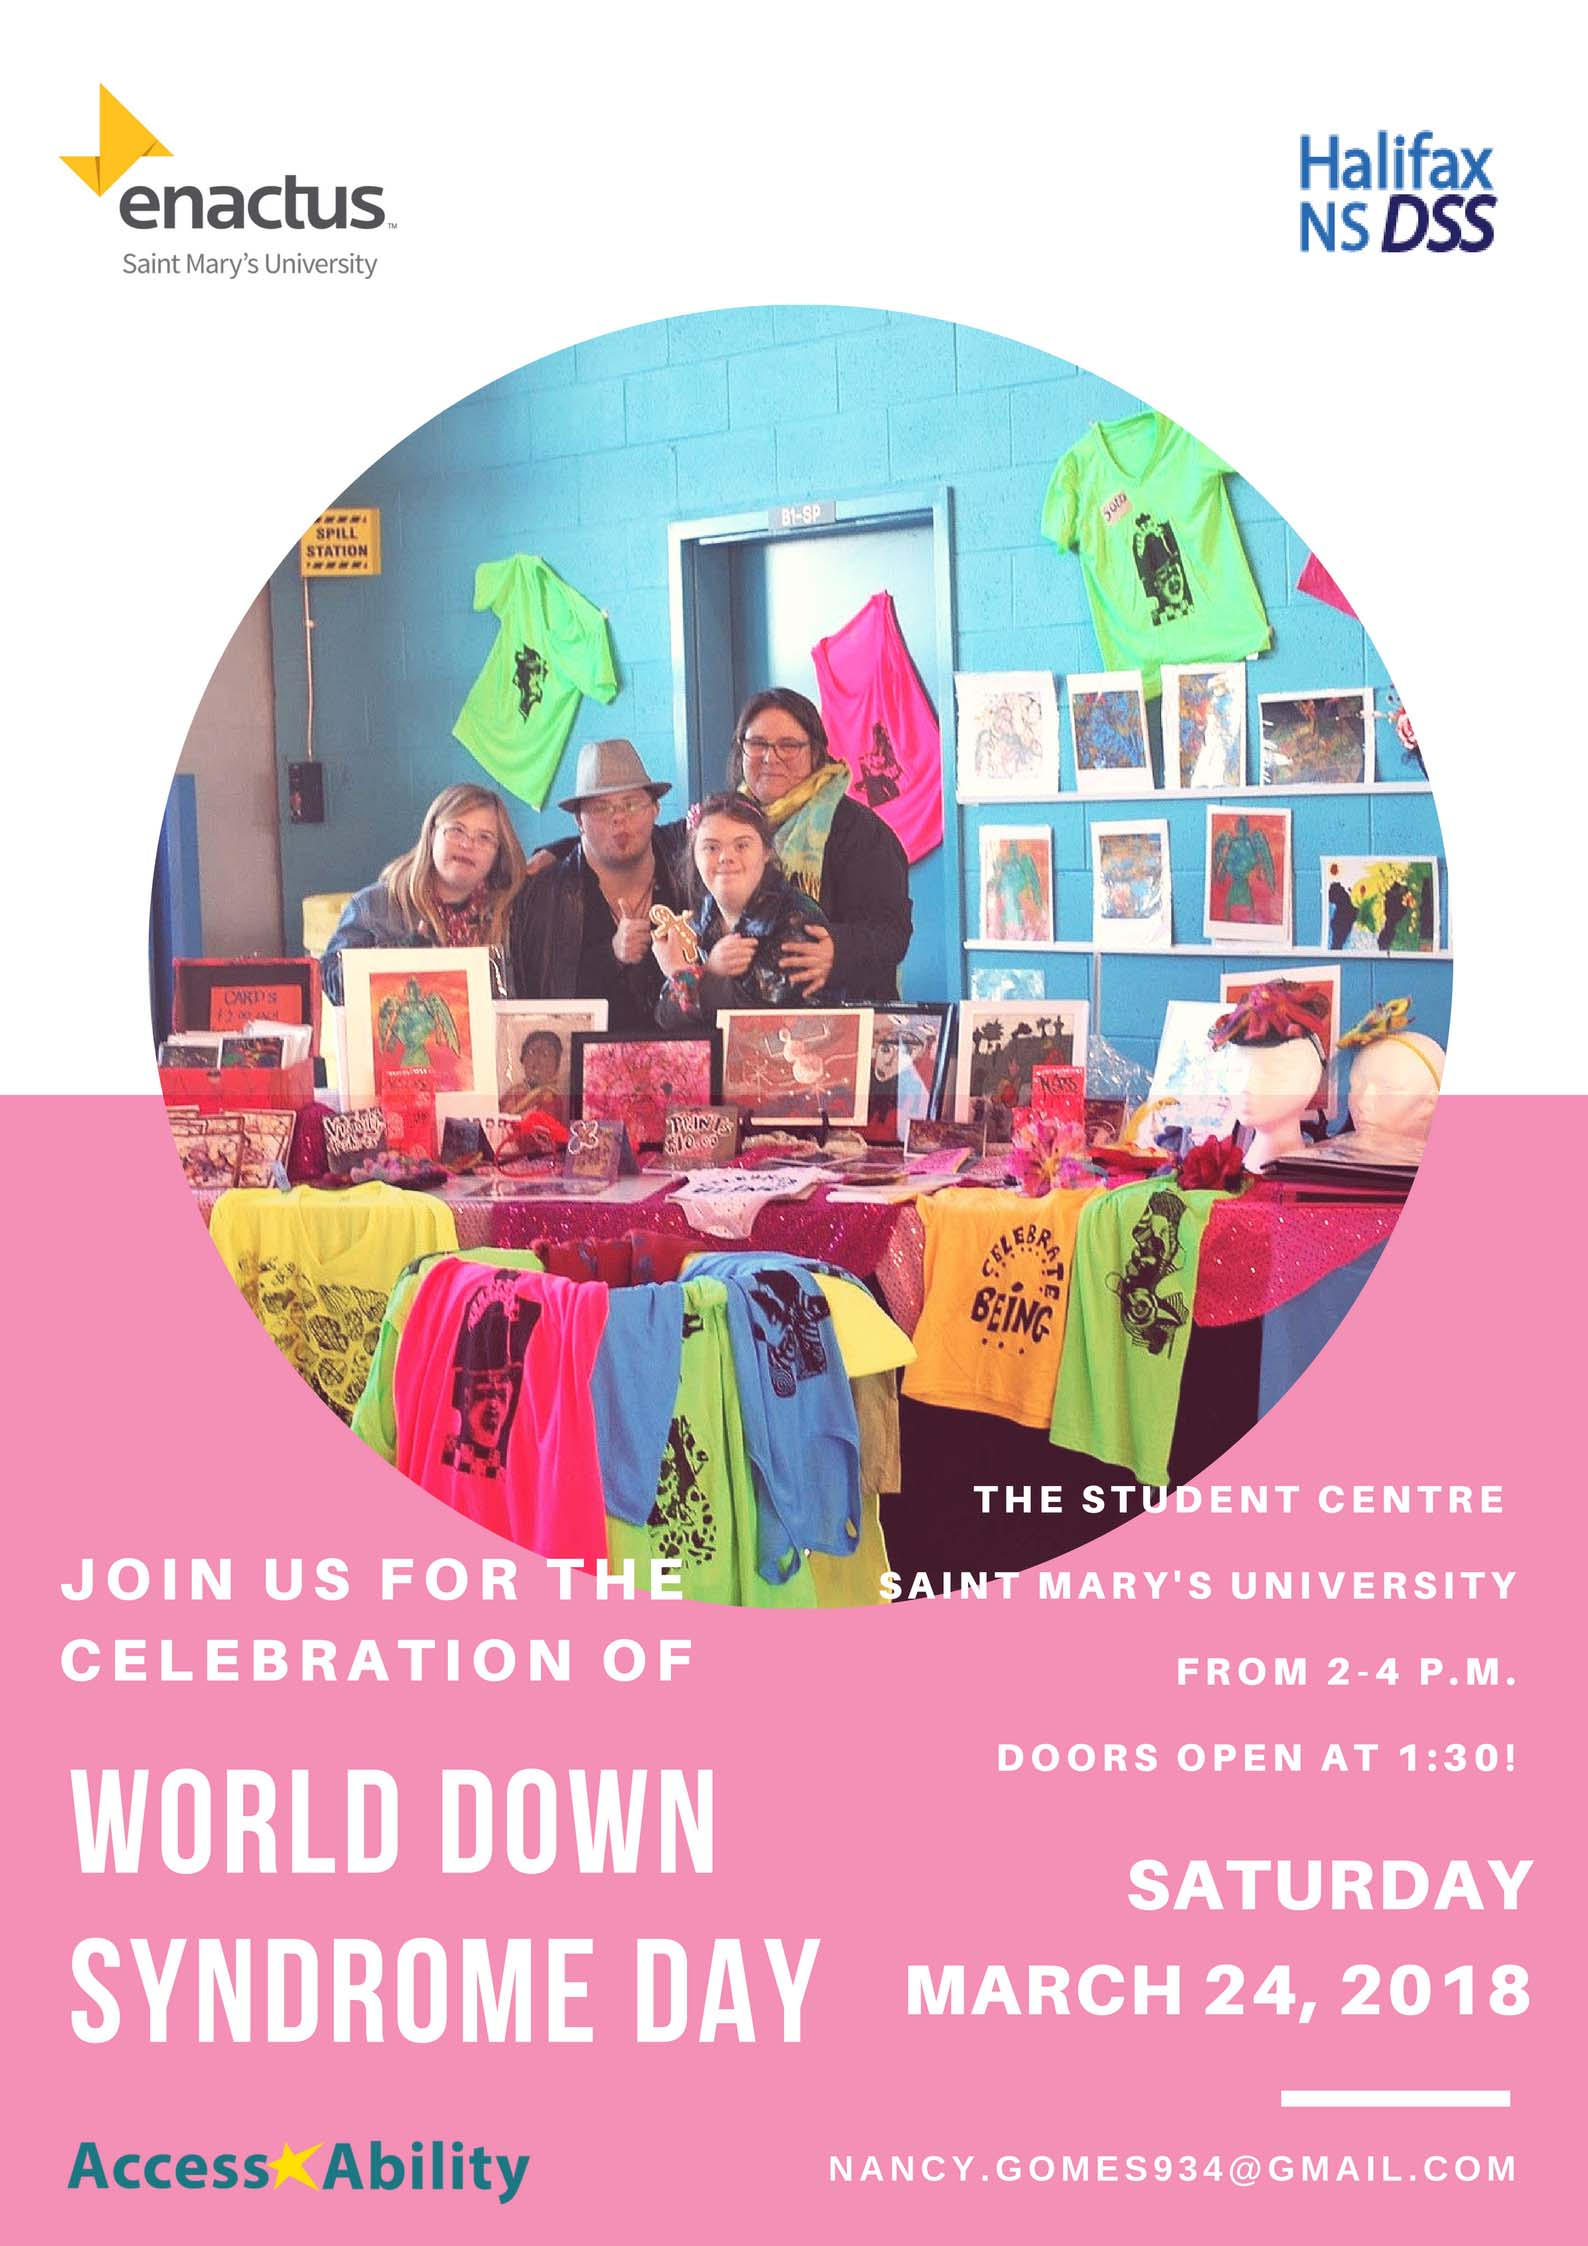 World Down Syndrome Day 2018 Events!